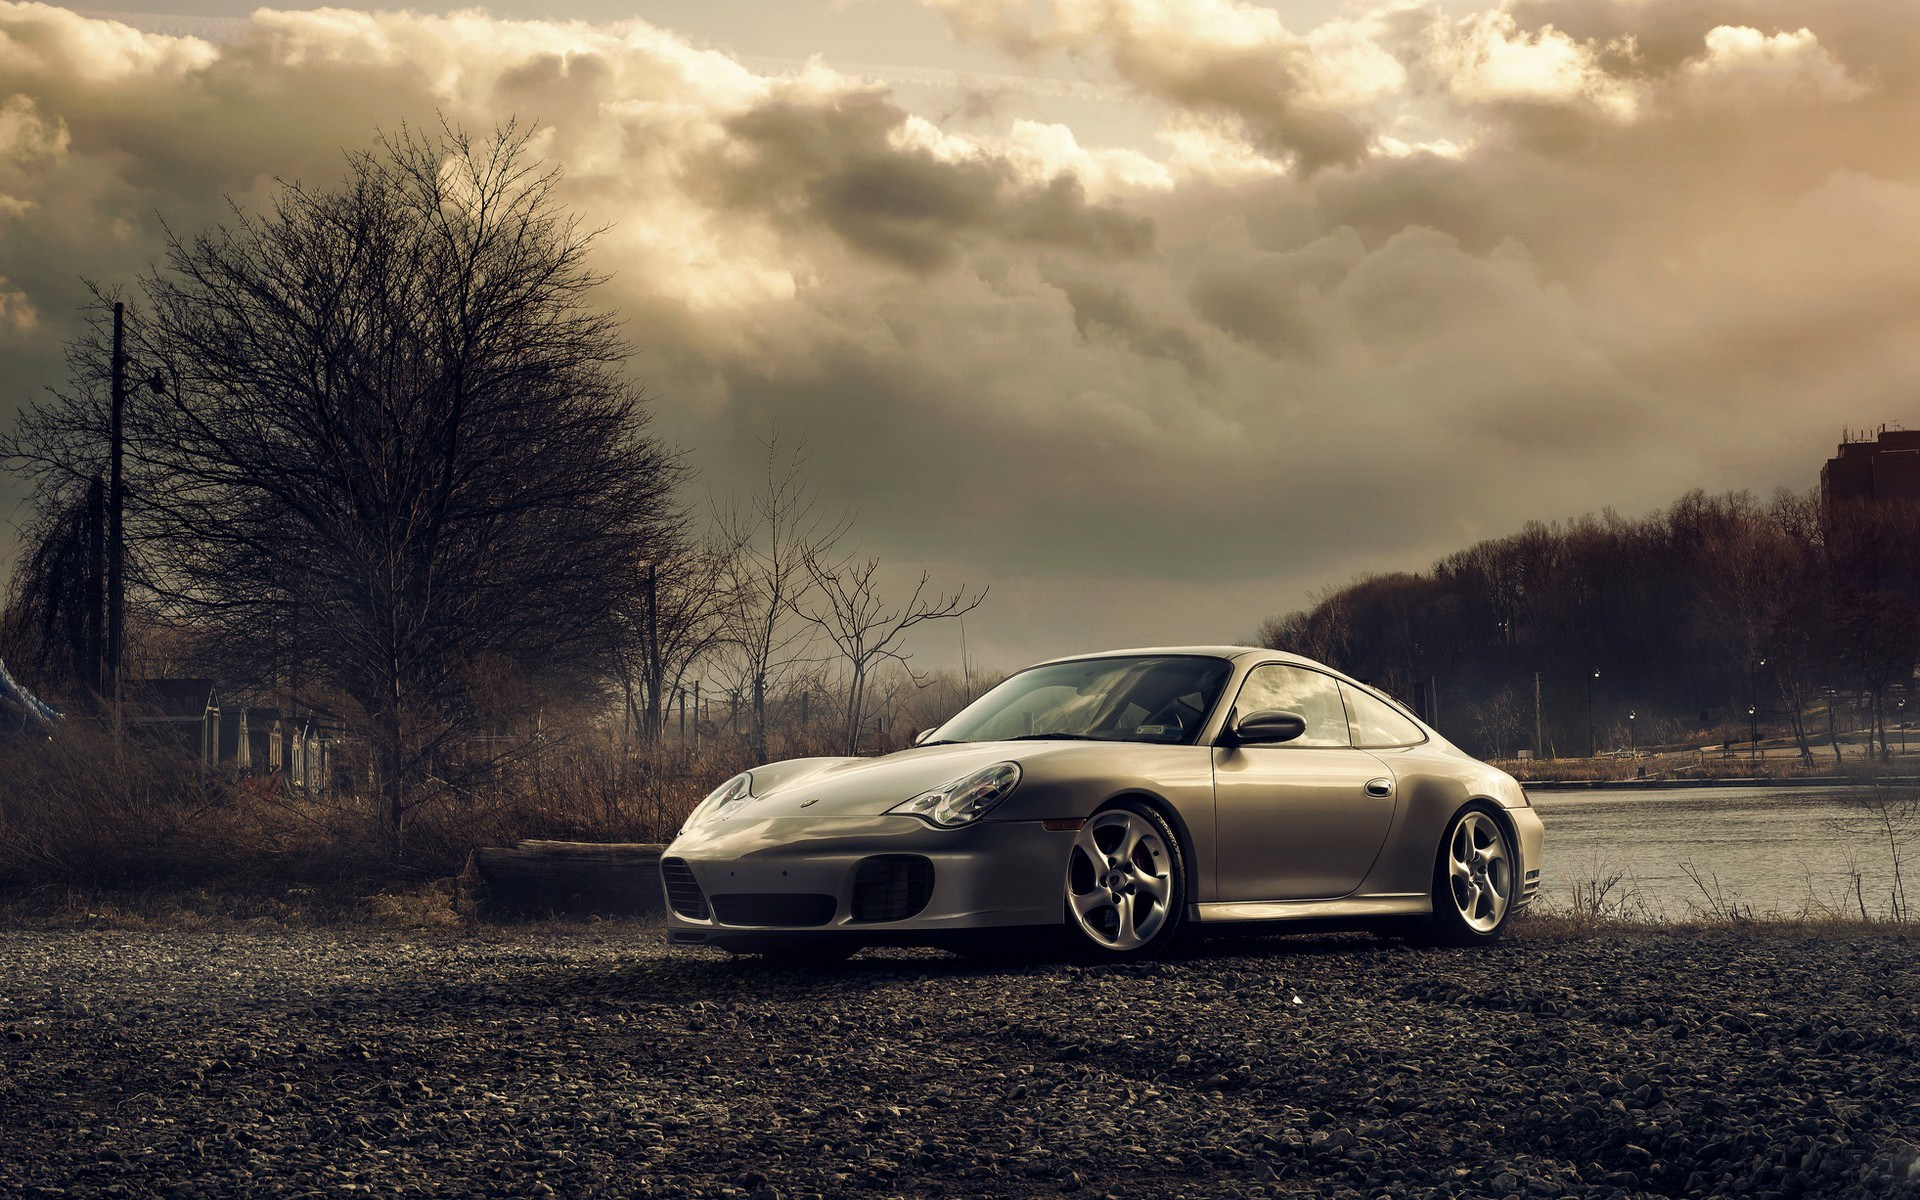 Porsche 911 Wallpaper 20584 1920x1200 Px Hdwallsource Com